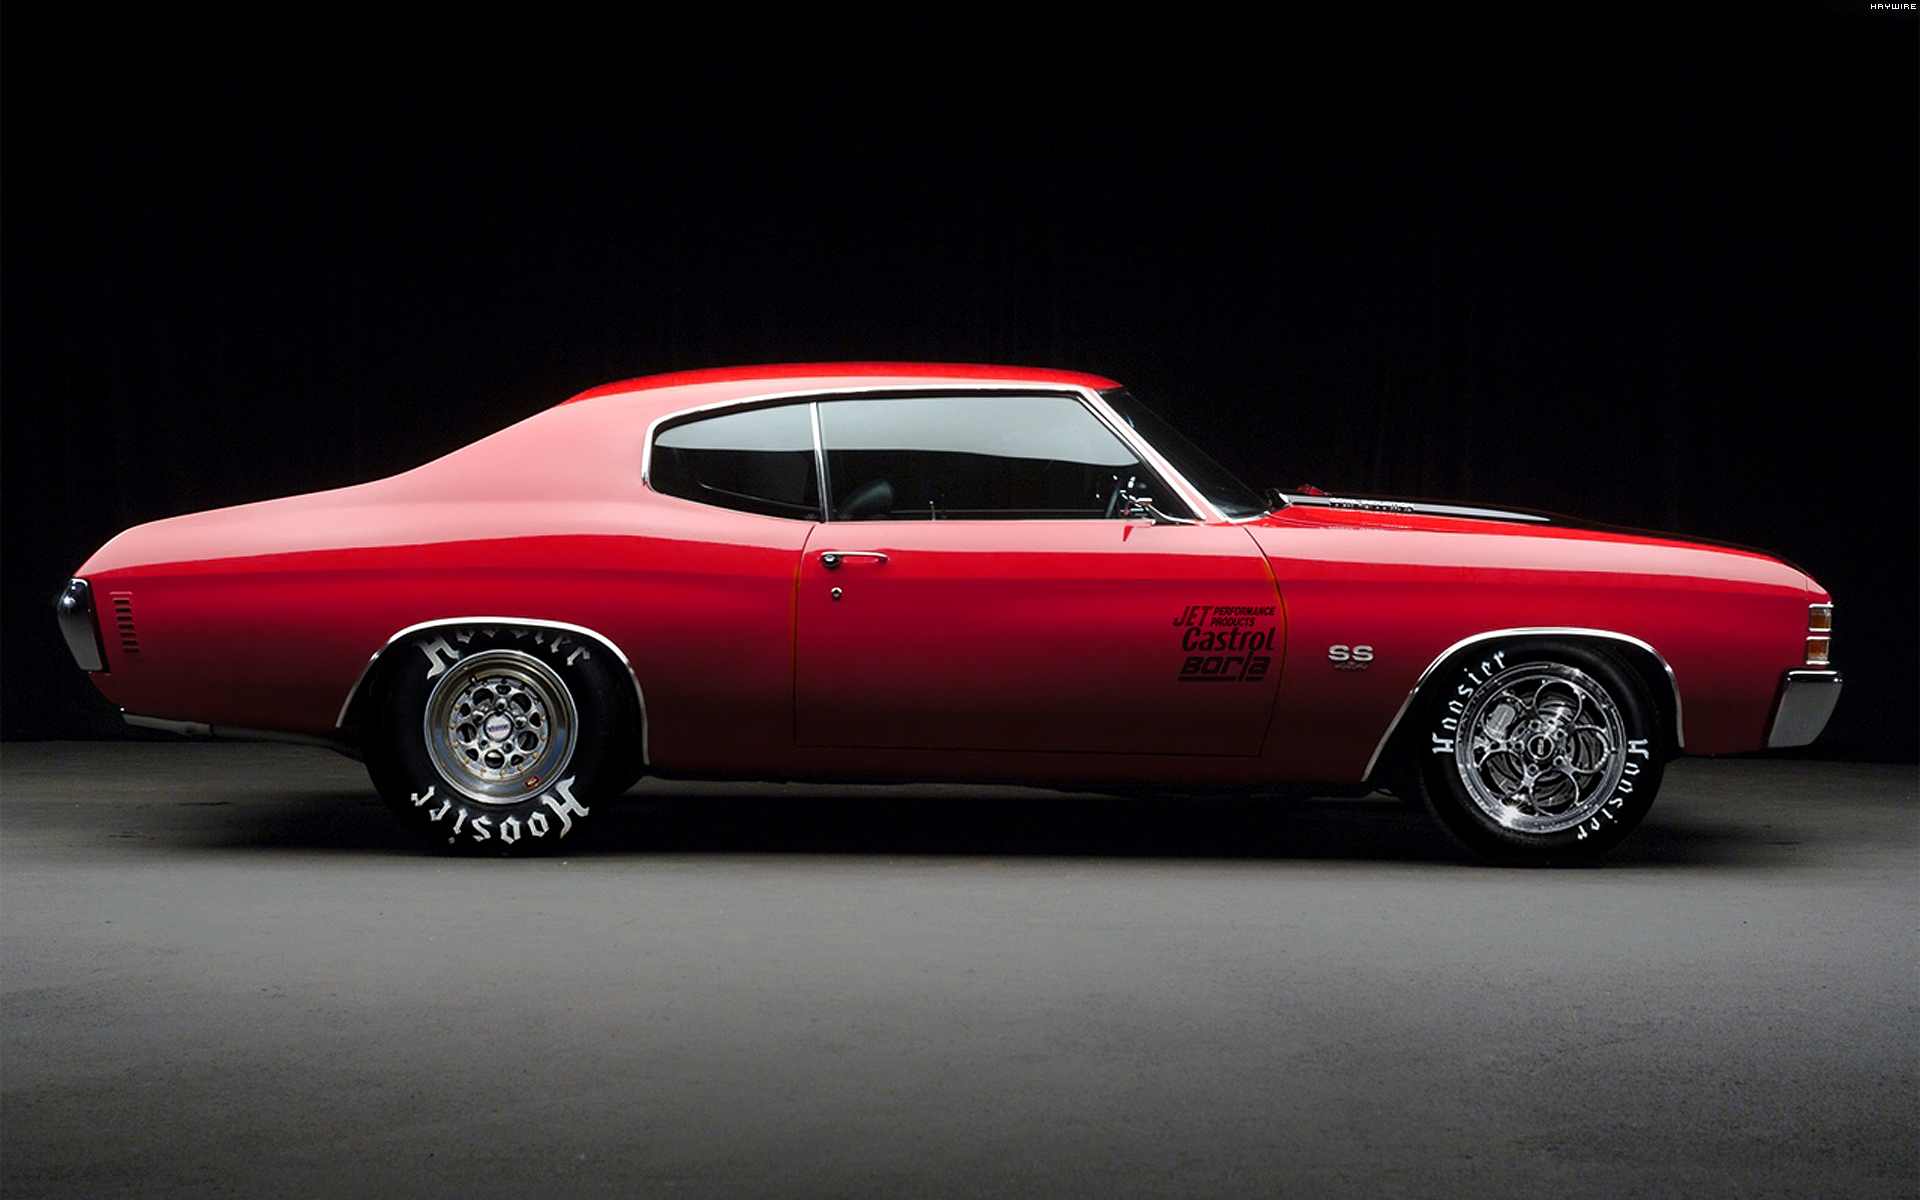 Marvelous 1920X1200Px Chevelle Ss Wallpaper Wallpapersafari Wiring Cloud Oideiuggs Outletorg